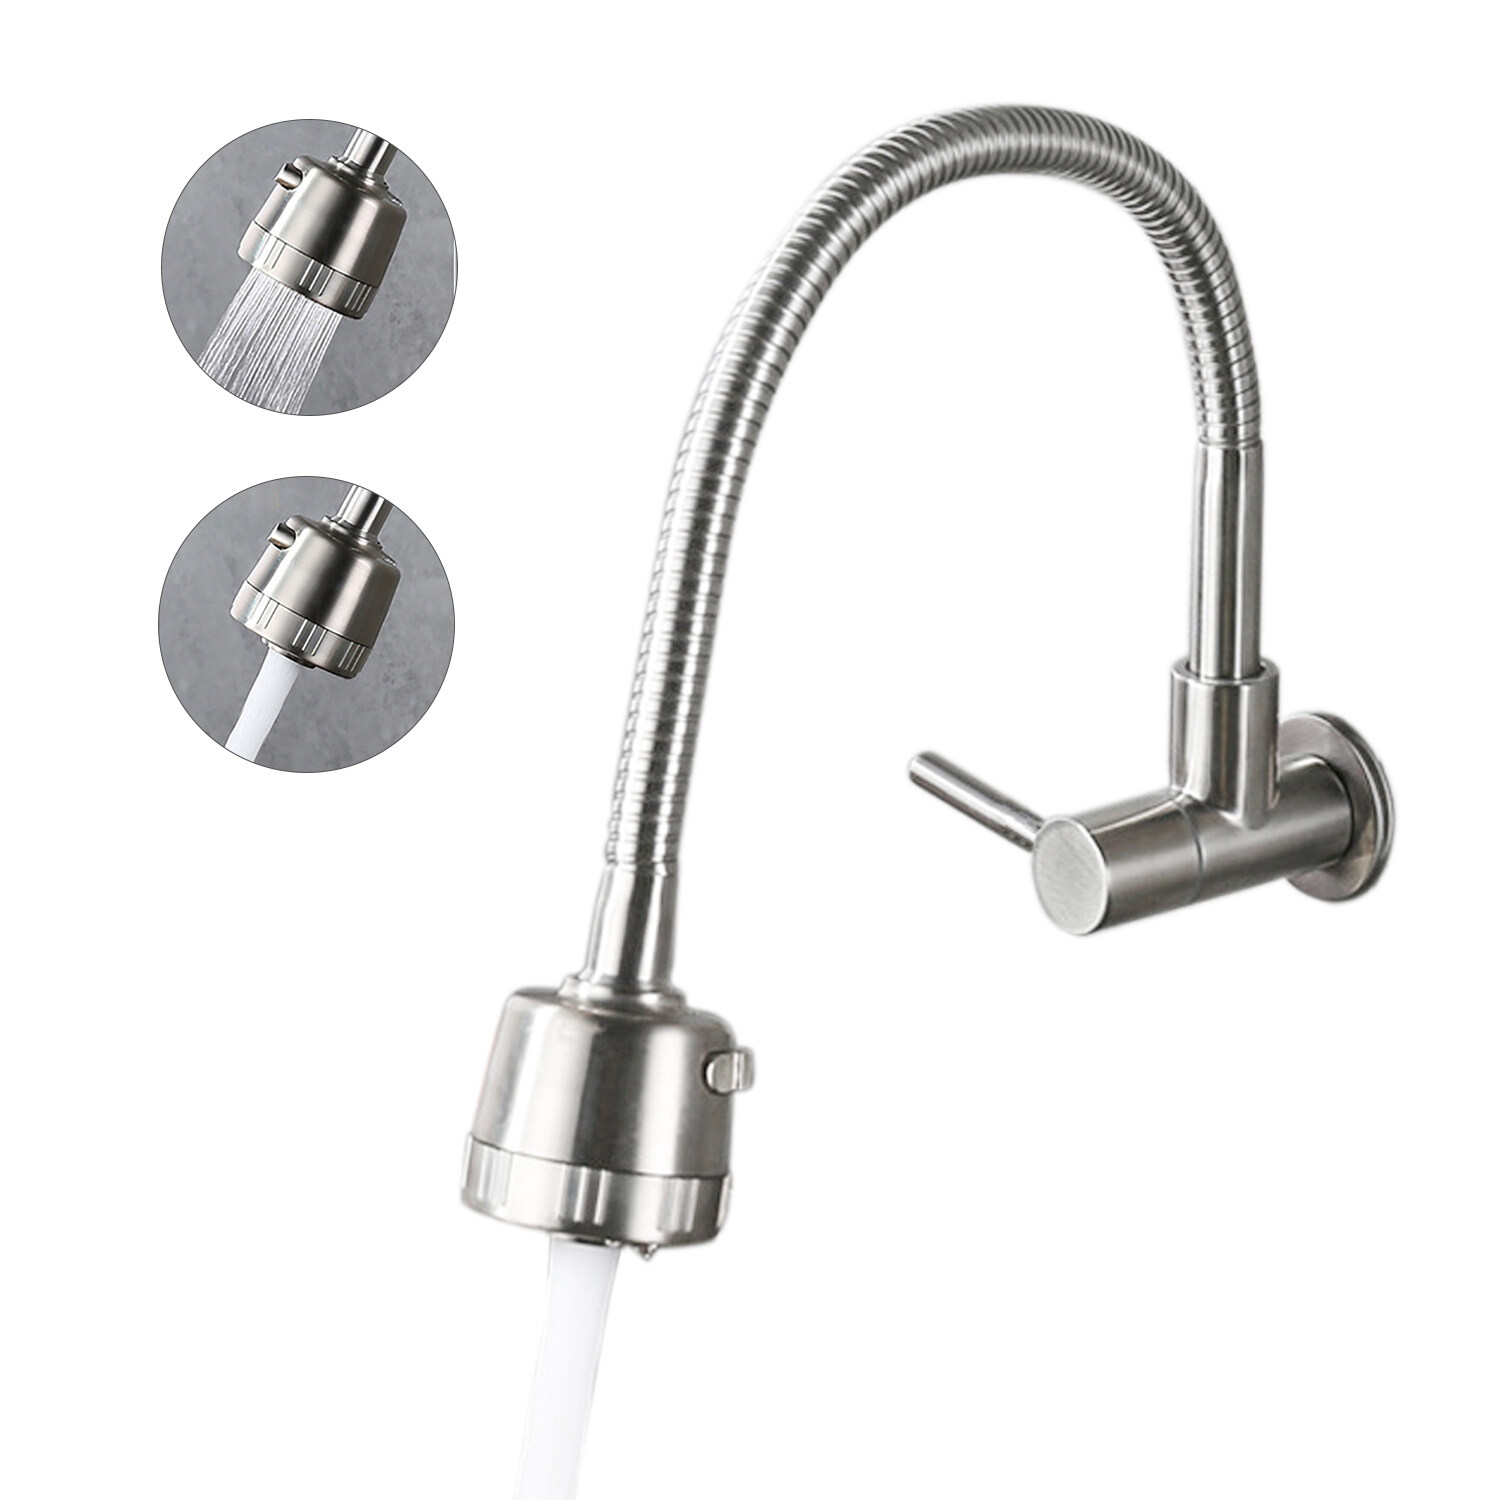 Wall Mounted Kitchen Faucets 2 Water Modes High Arc Single Handle Bathroom Sink Faucets Stainless Steel Brushed Finished 360 Degree Rotatable Water Tap With Cold Water Inlet Hose Lazada Ph